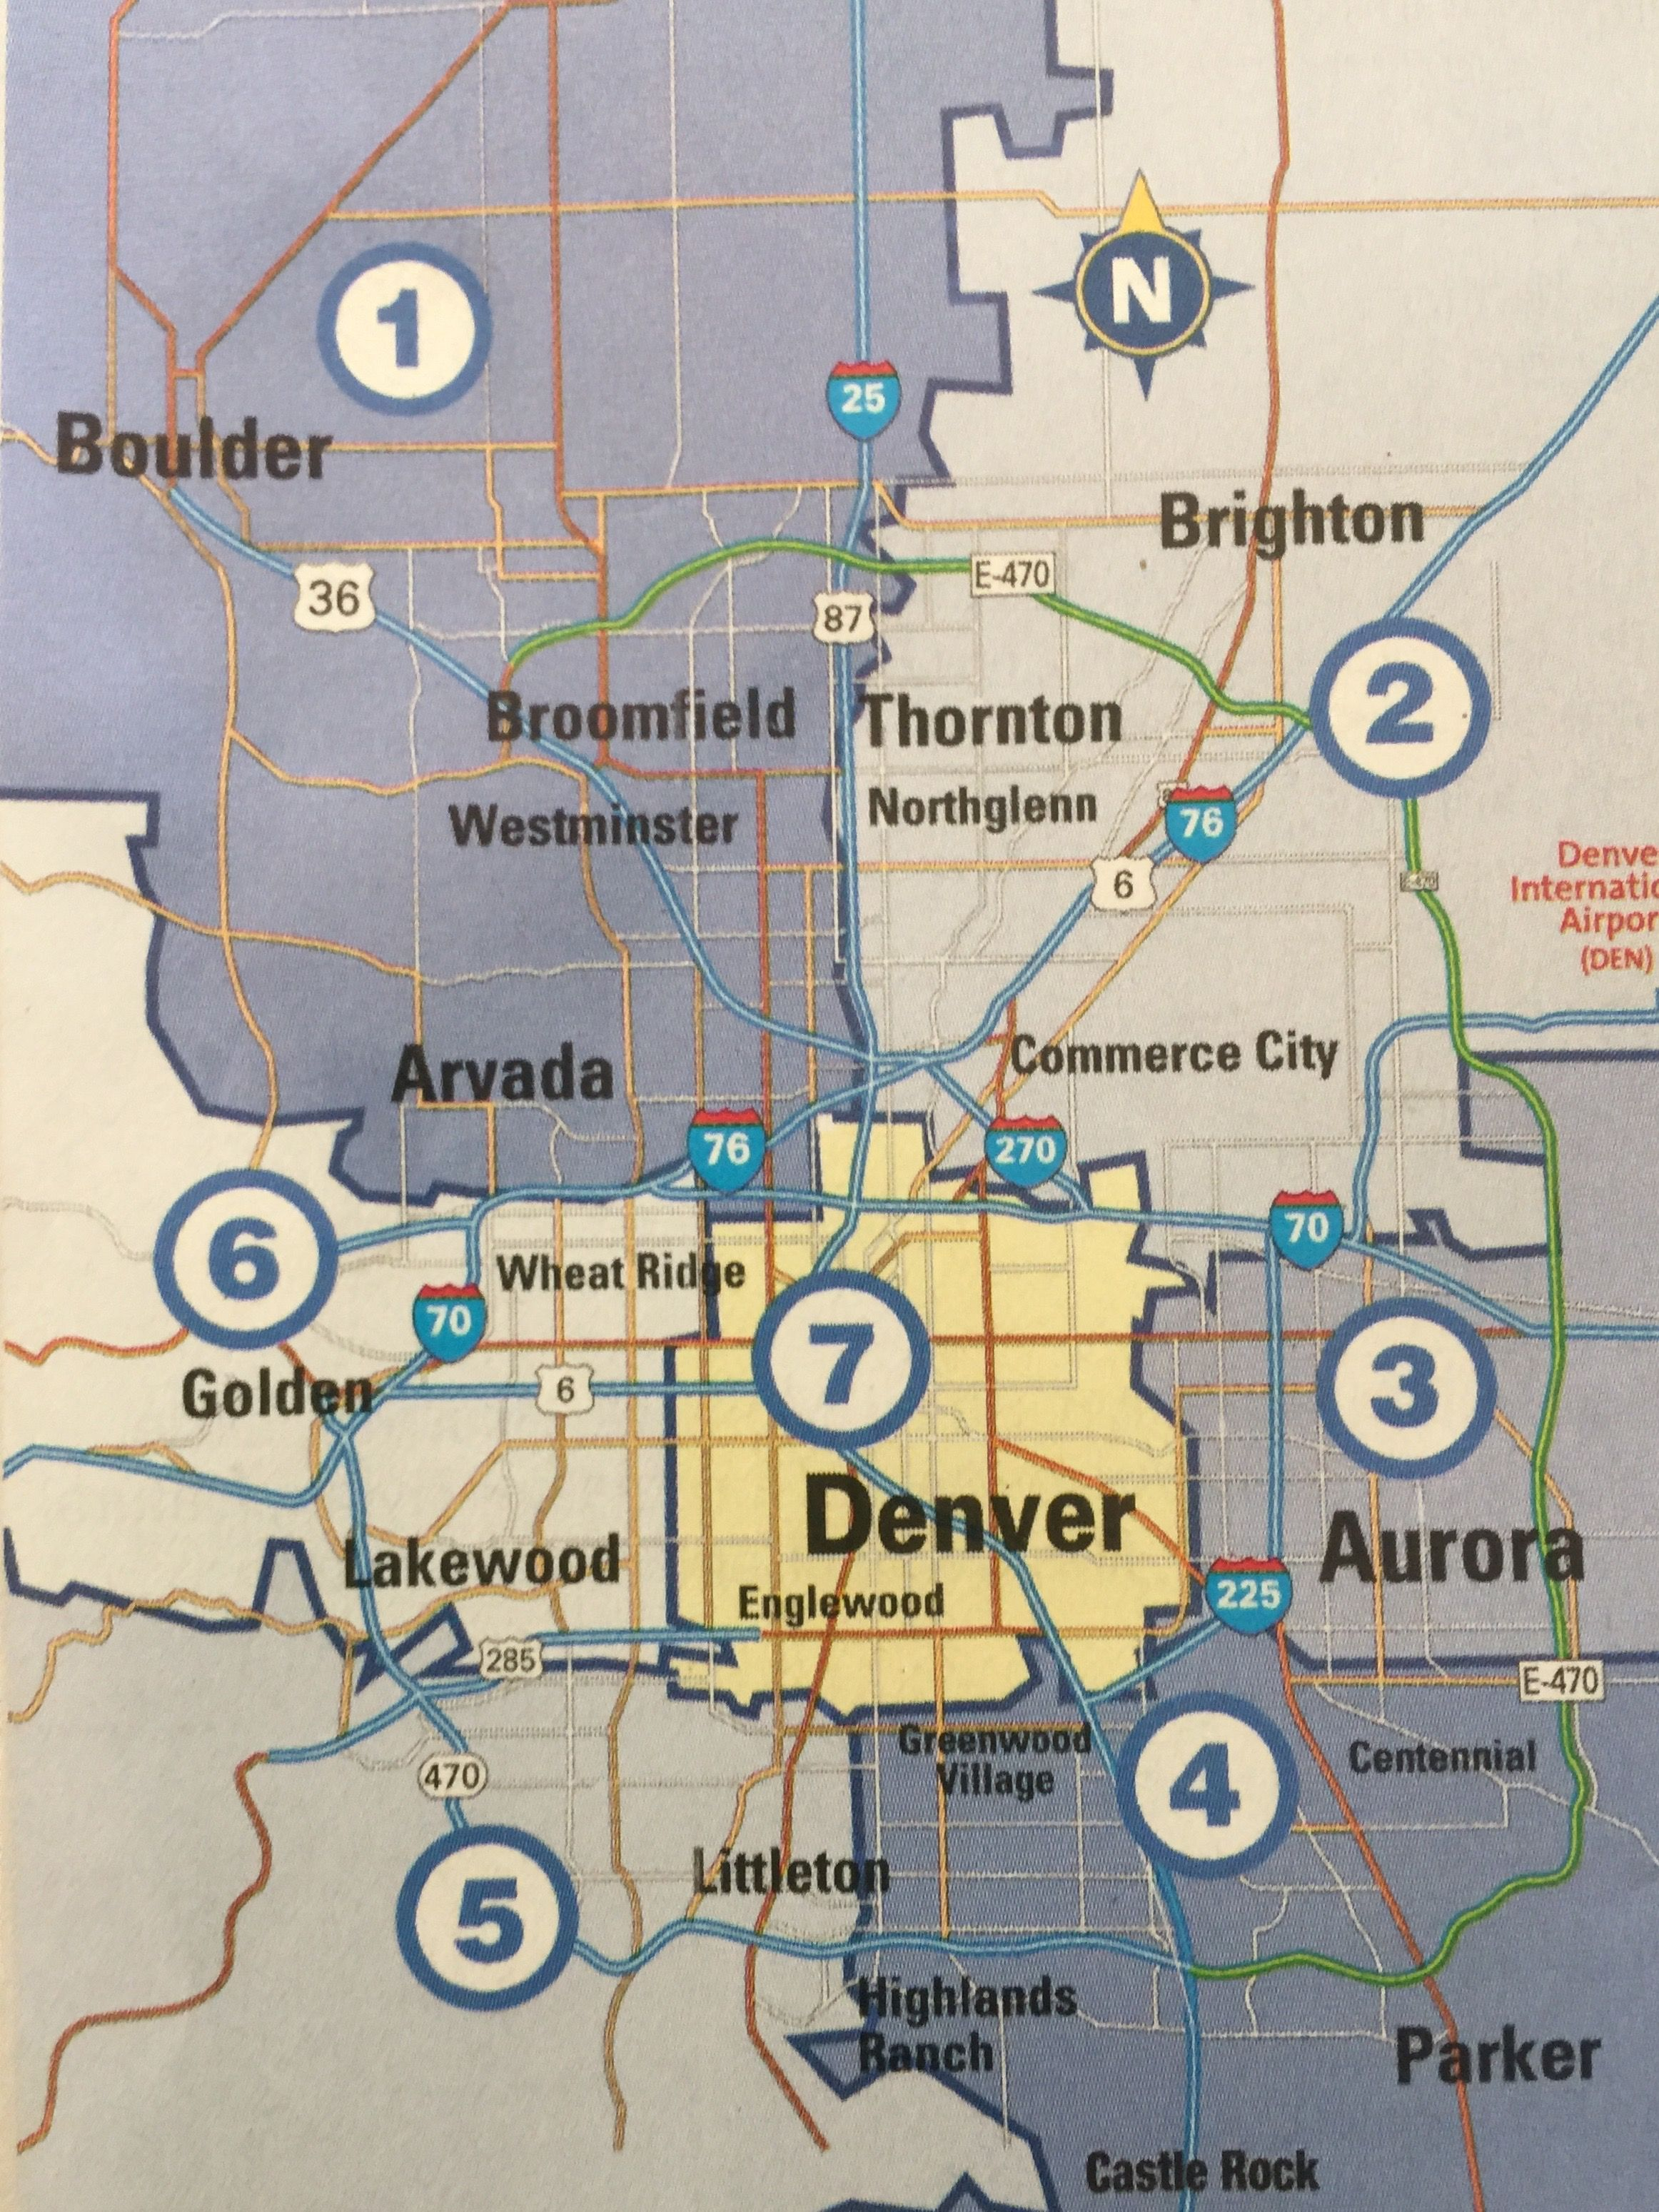 Denver and suburbs - Orientation map | USA Colorado Living | Denver on